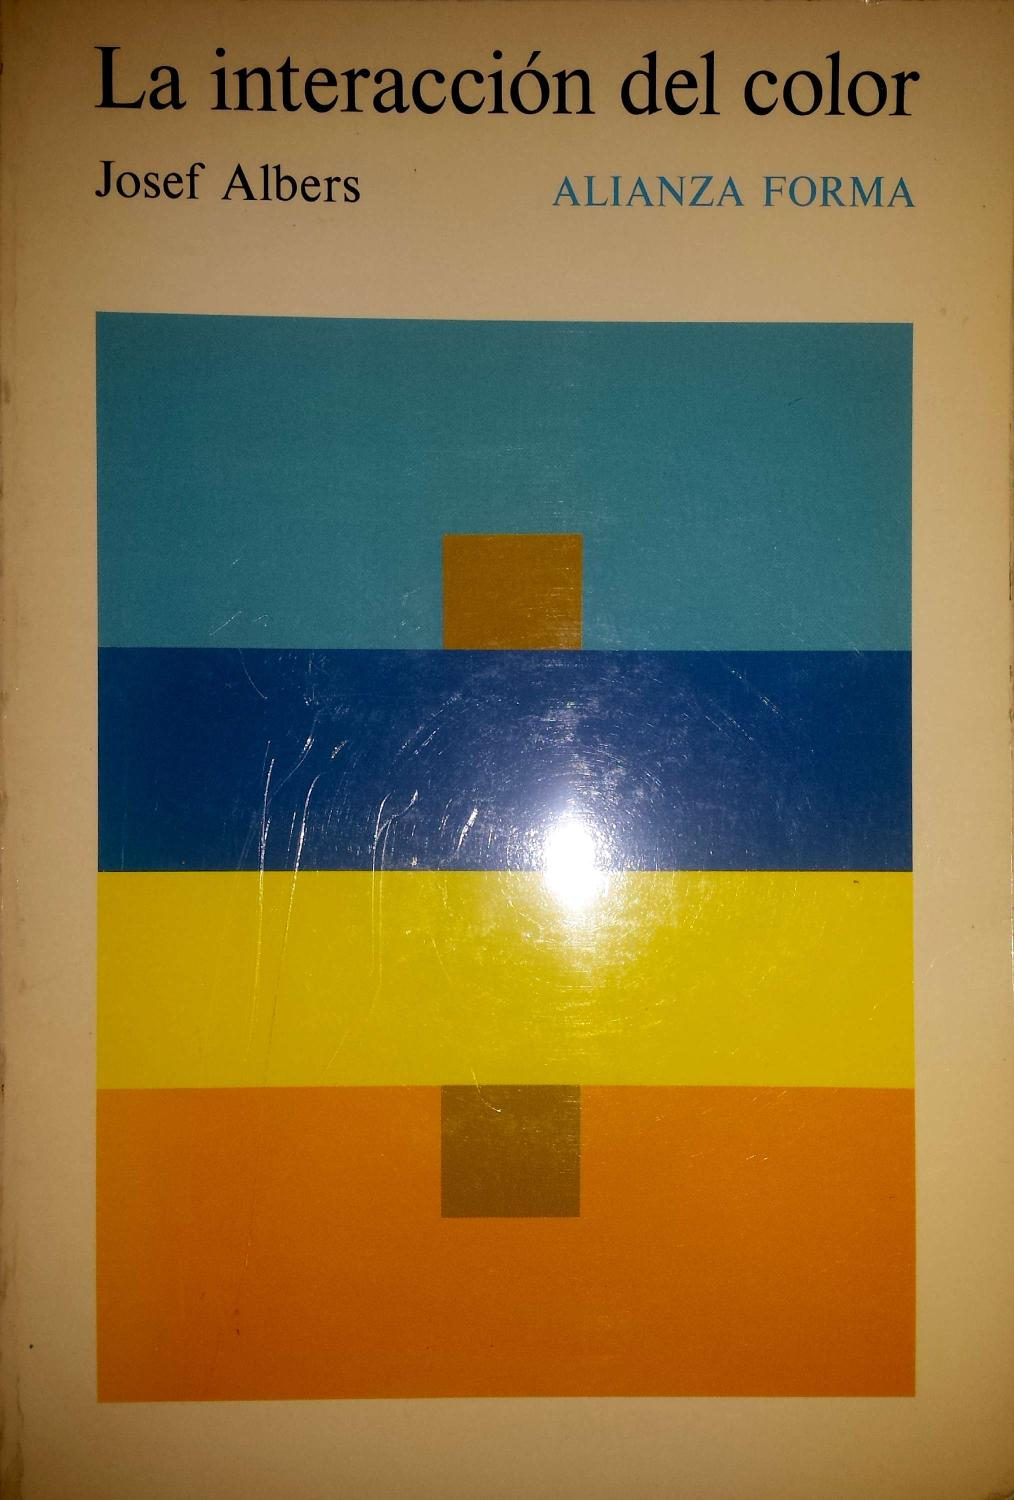 La Interaccion Del Color By Josef Albers Náufragos